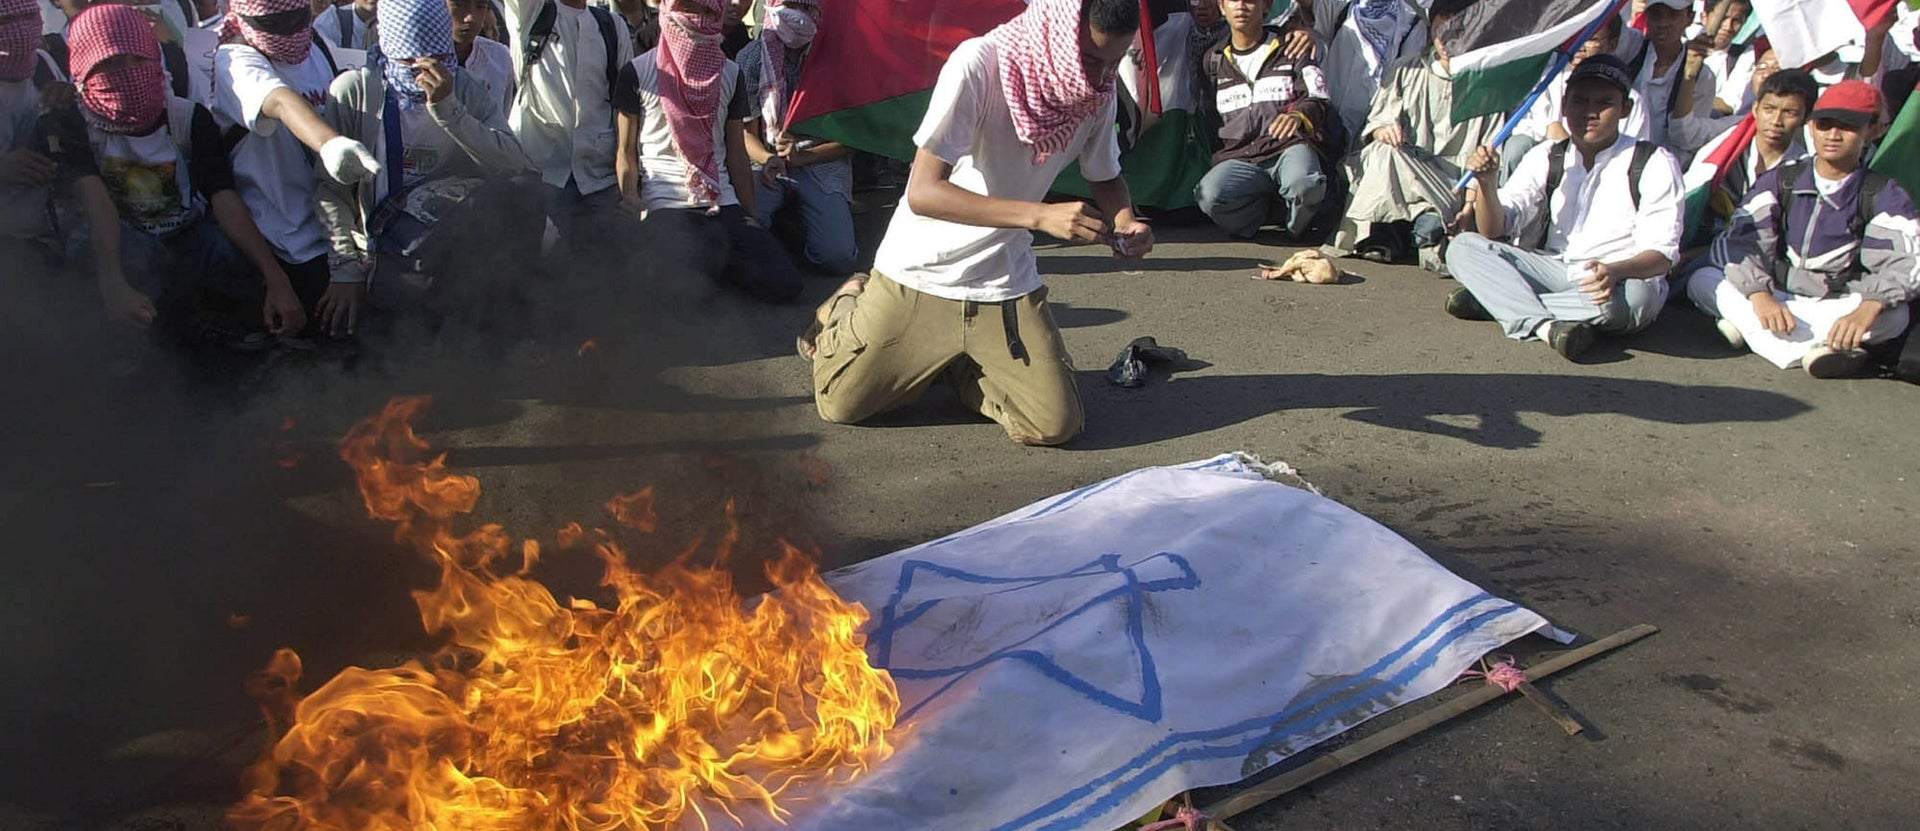 FILE: Indonesian Muslim protesters burn the Israeli flag during an anti-Israel protest in Jakarta, Indonesia